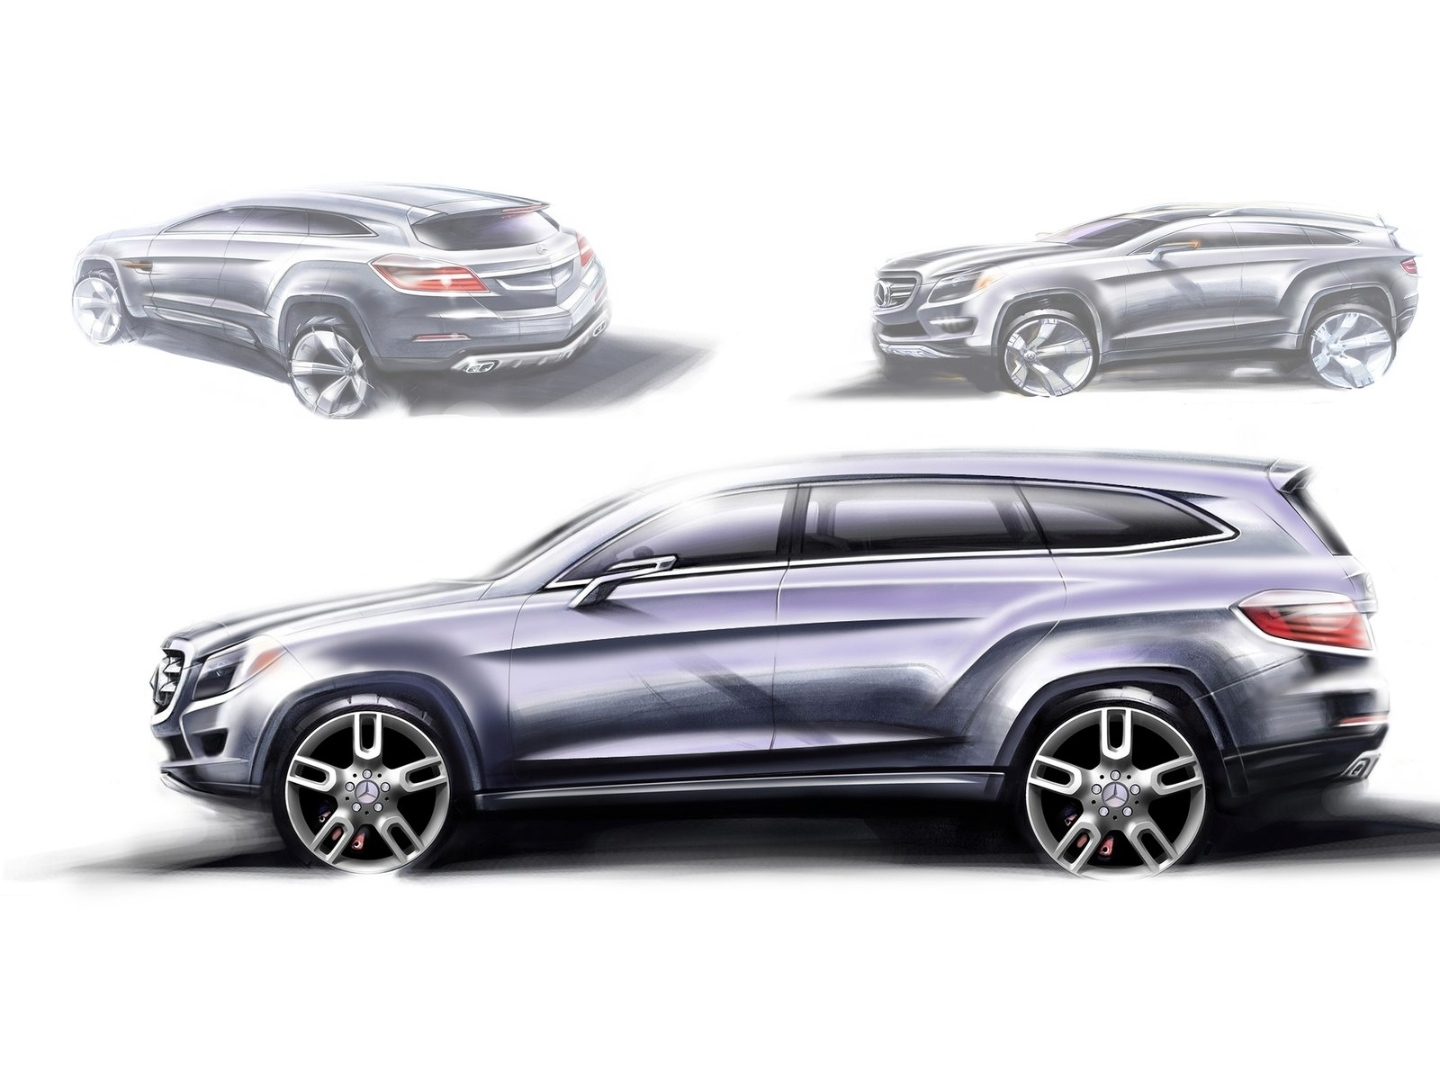 2019 Mercedes Benz GL550 photo - 1